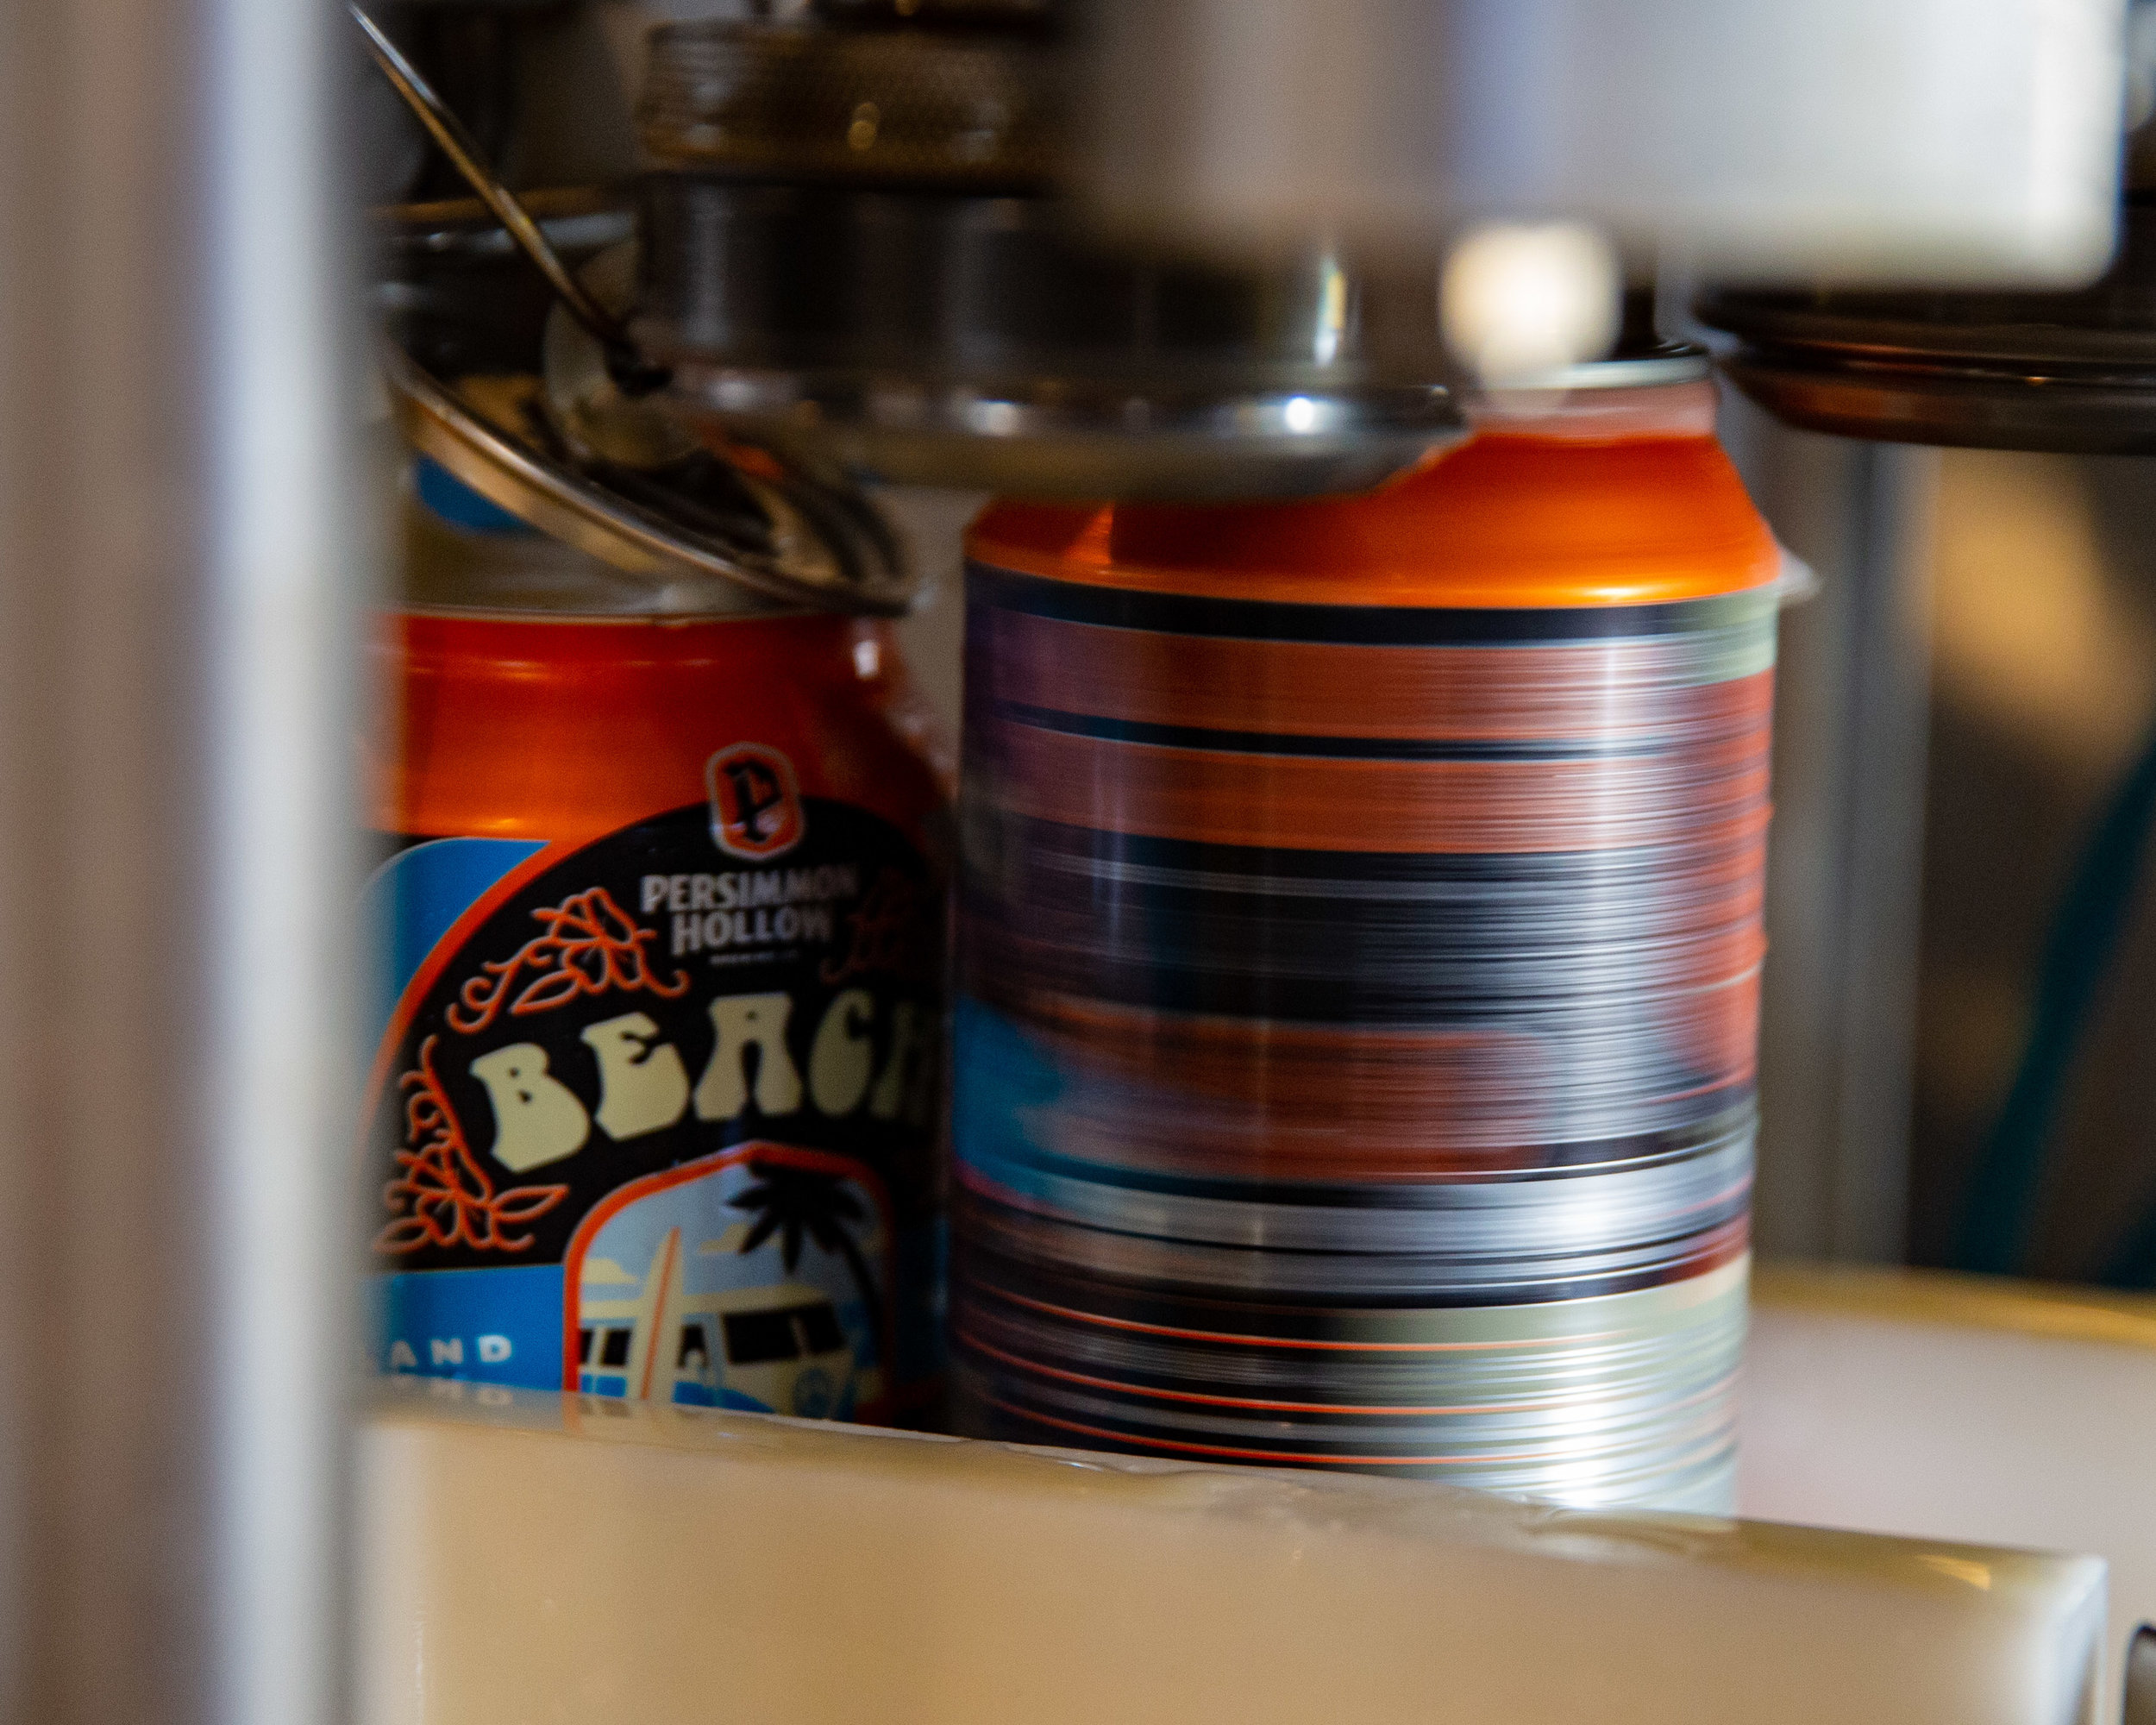 Pictured: A can of Beach Hippie IPA moving through the canning process.